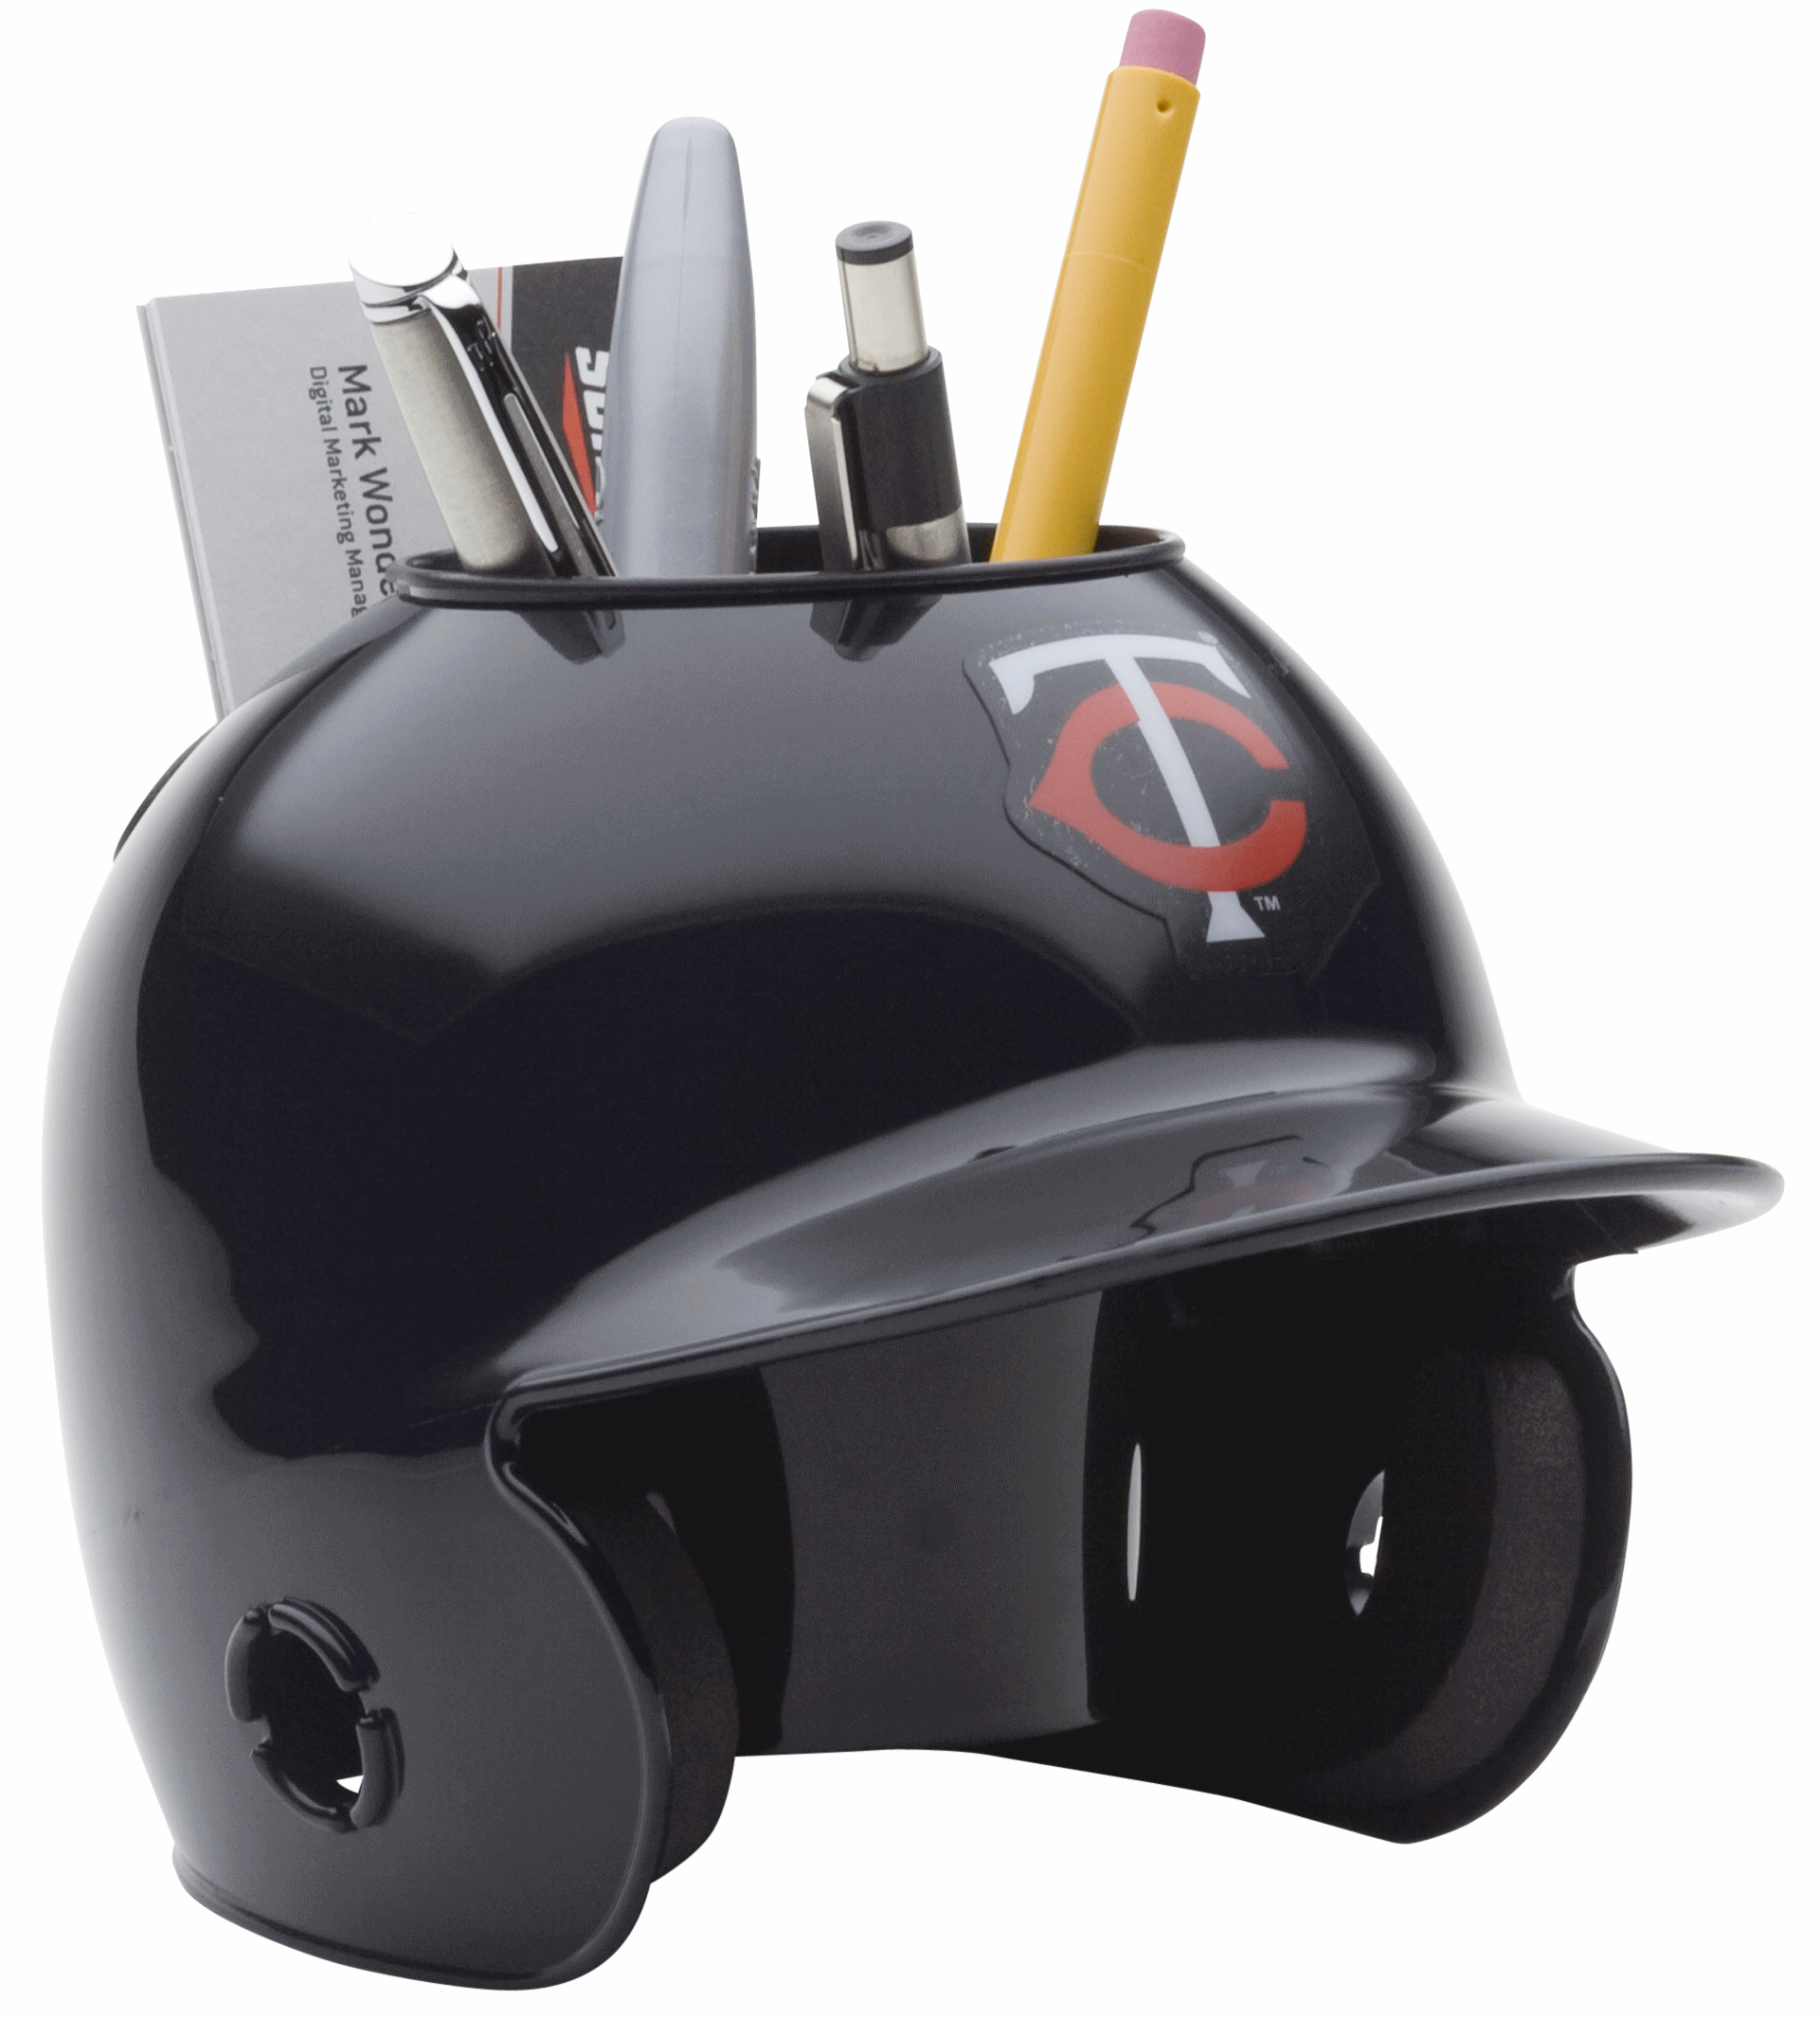 Minnesota Twins Miniature Batters Helmet Desk Caddy